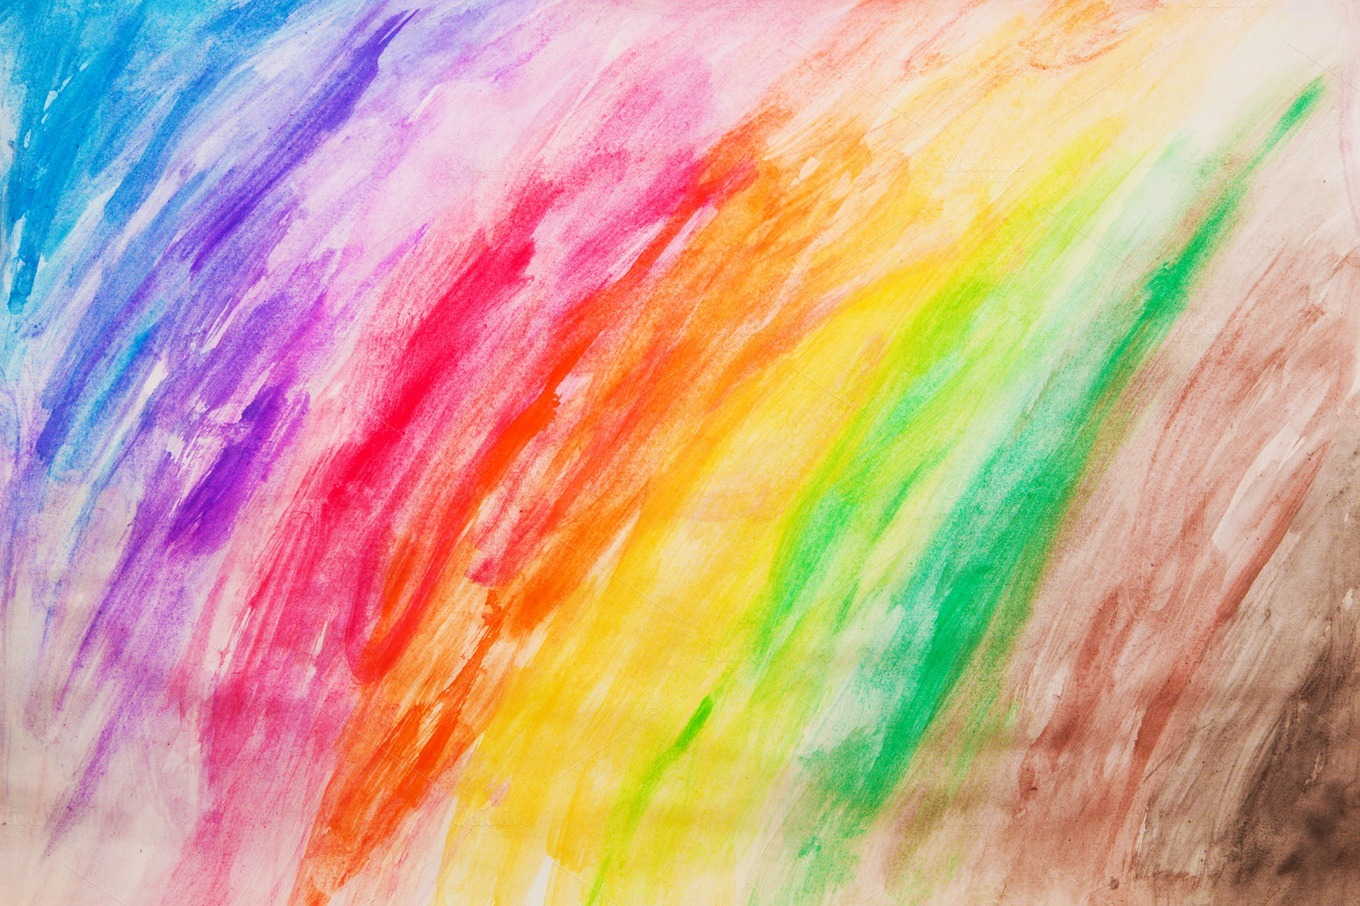 Vibrant Colorful Painting Pattern Abstract Photos On